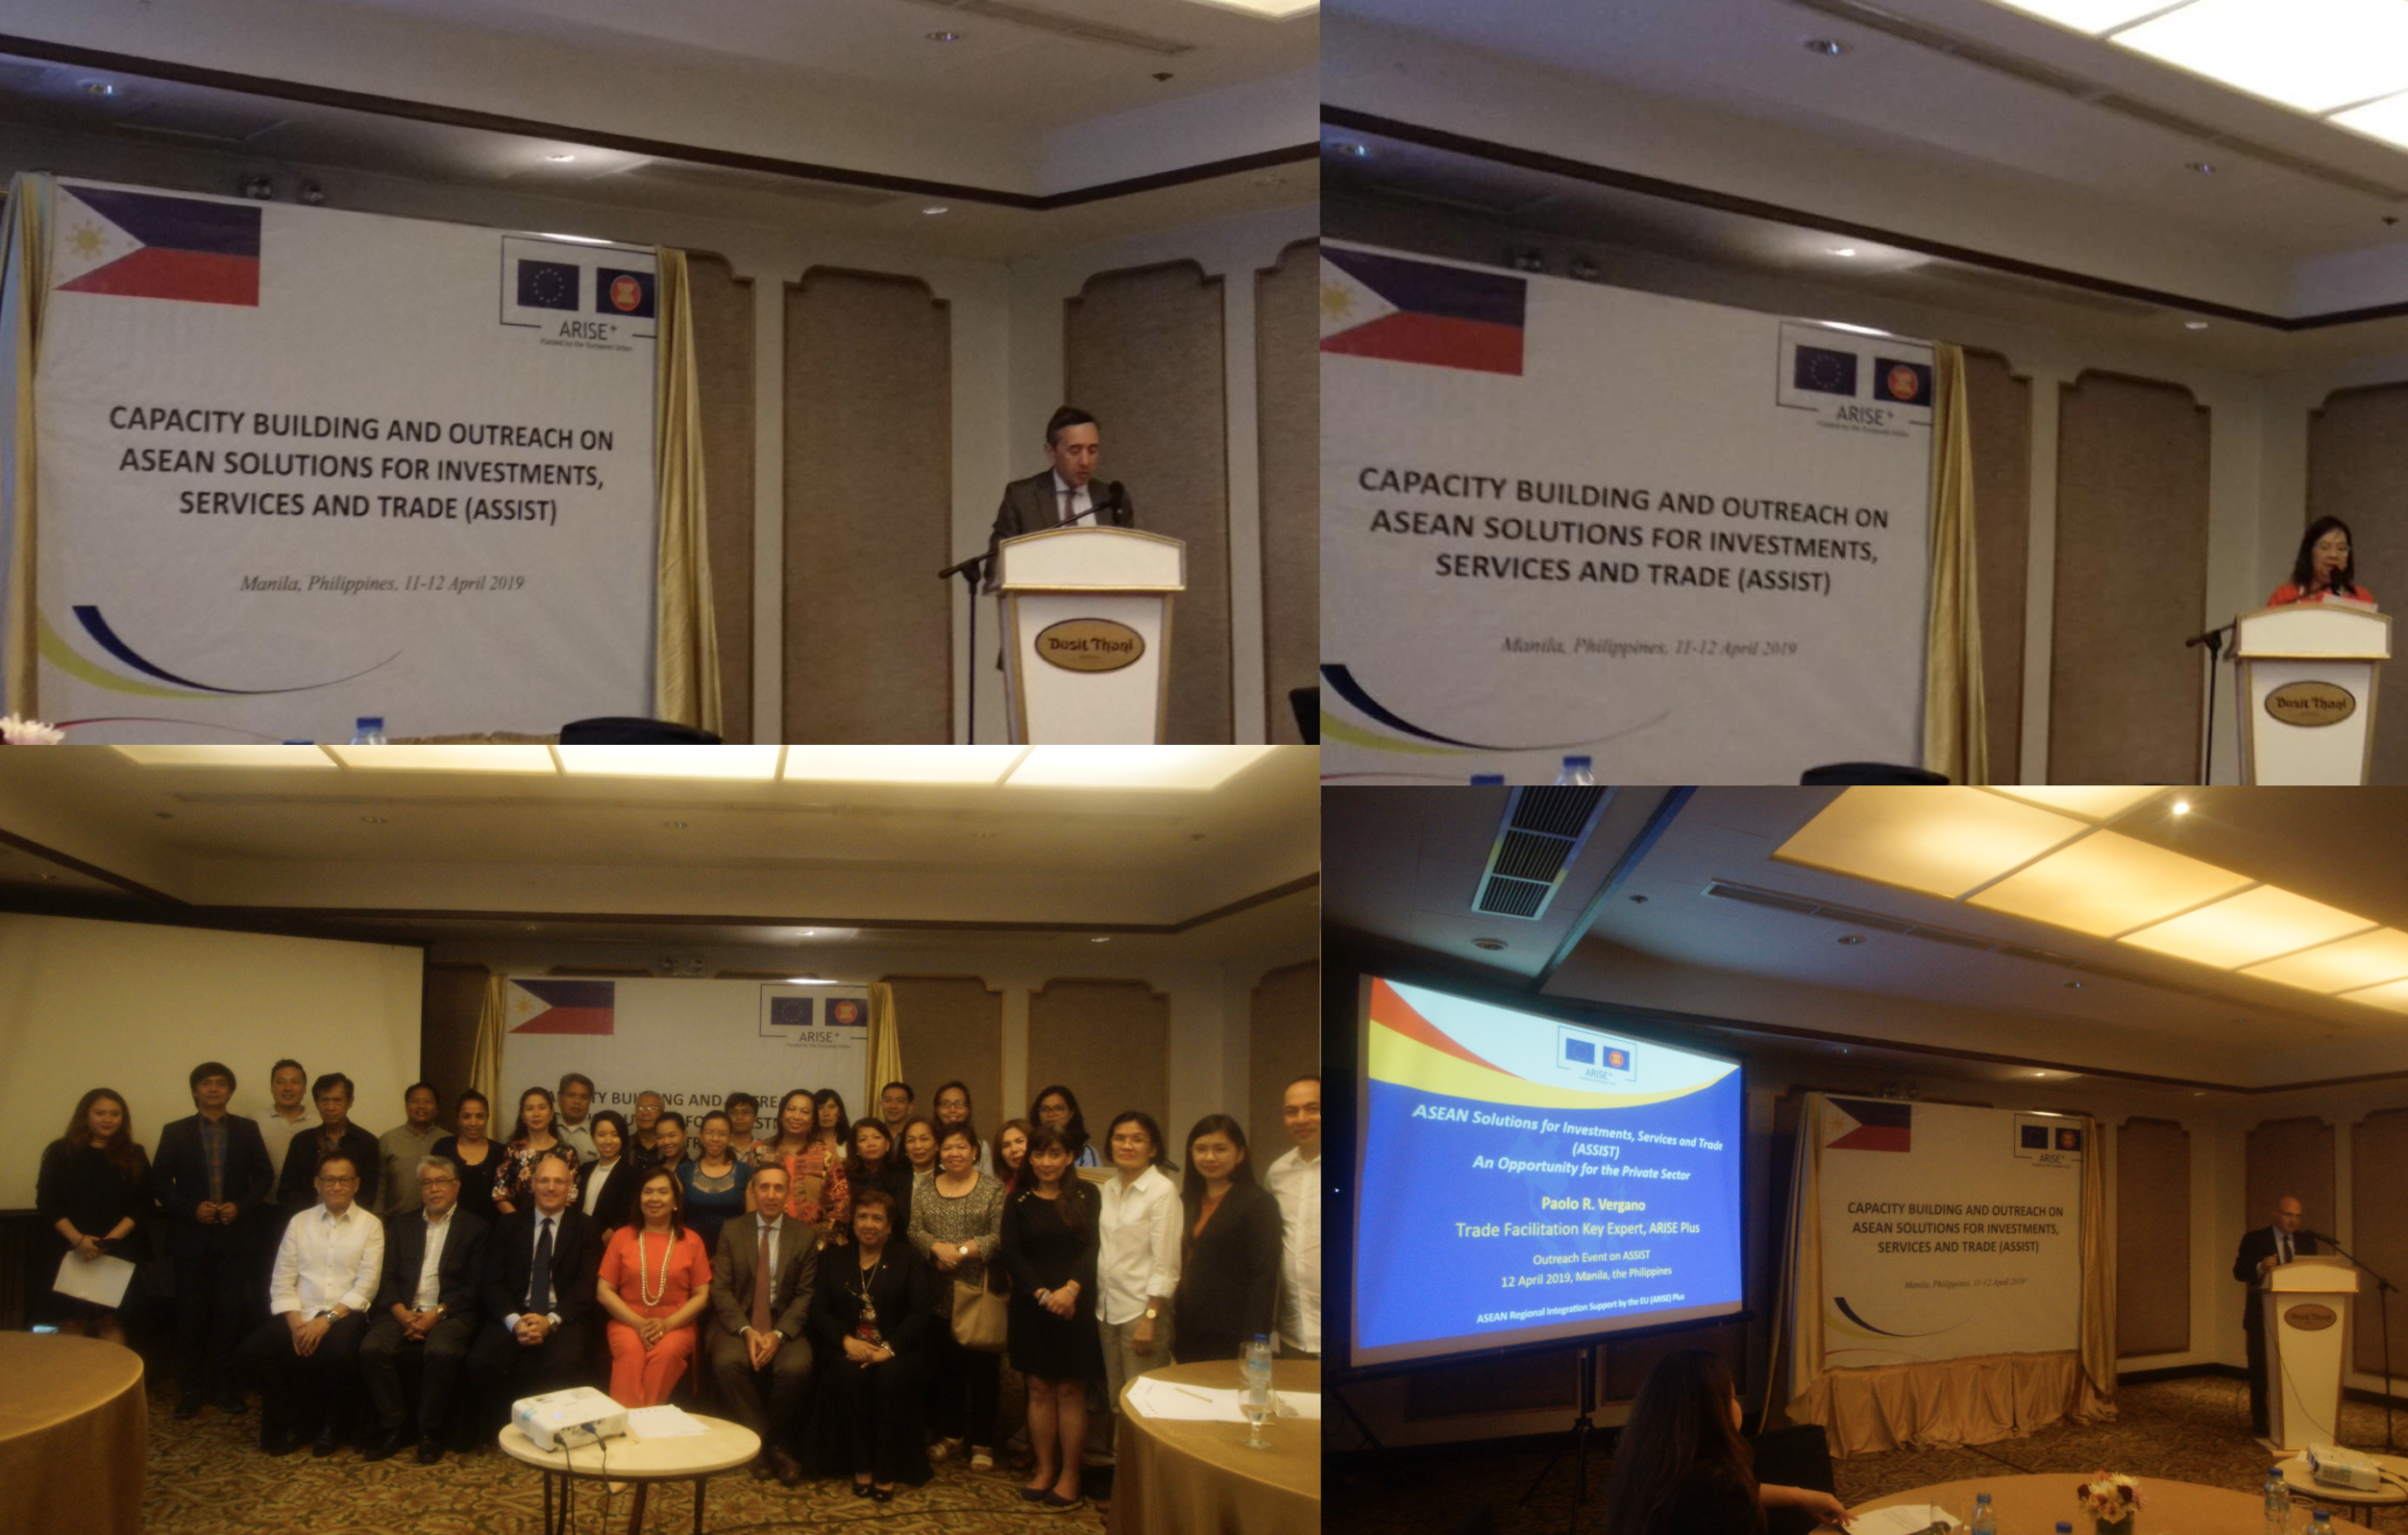 ASSIST makes business easy for SMEs  to trade with ASEAN-member states